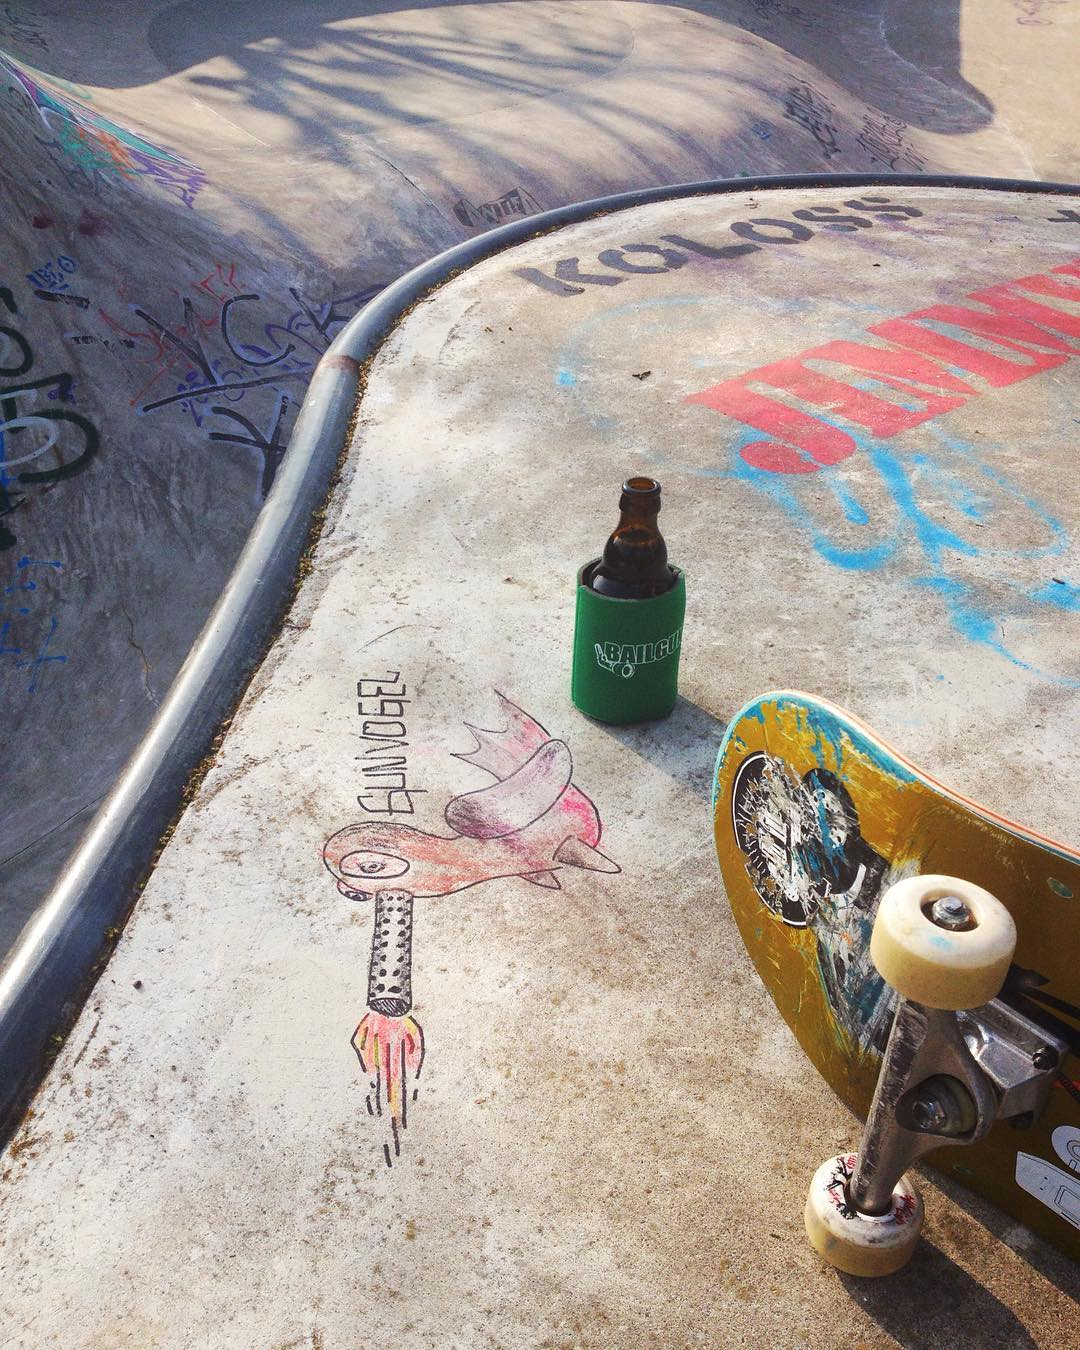 Session with the #gunvogel at the Berg today. #bailgun #bergfidel #skateboarding #pool #bowl